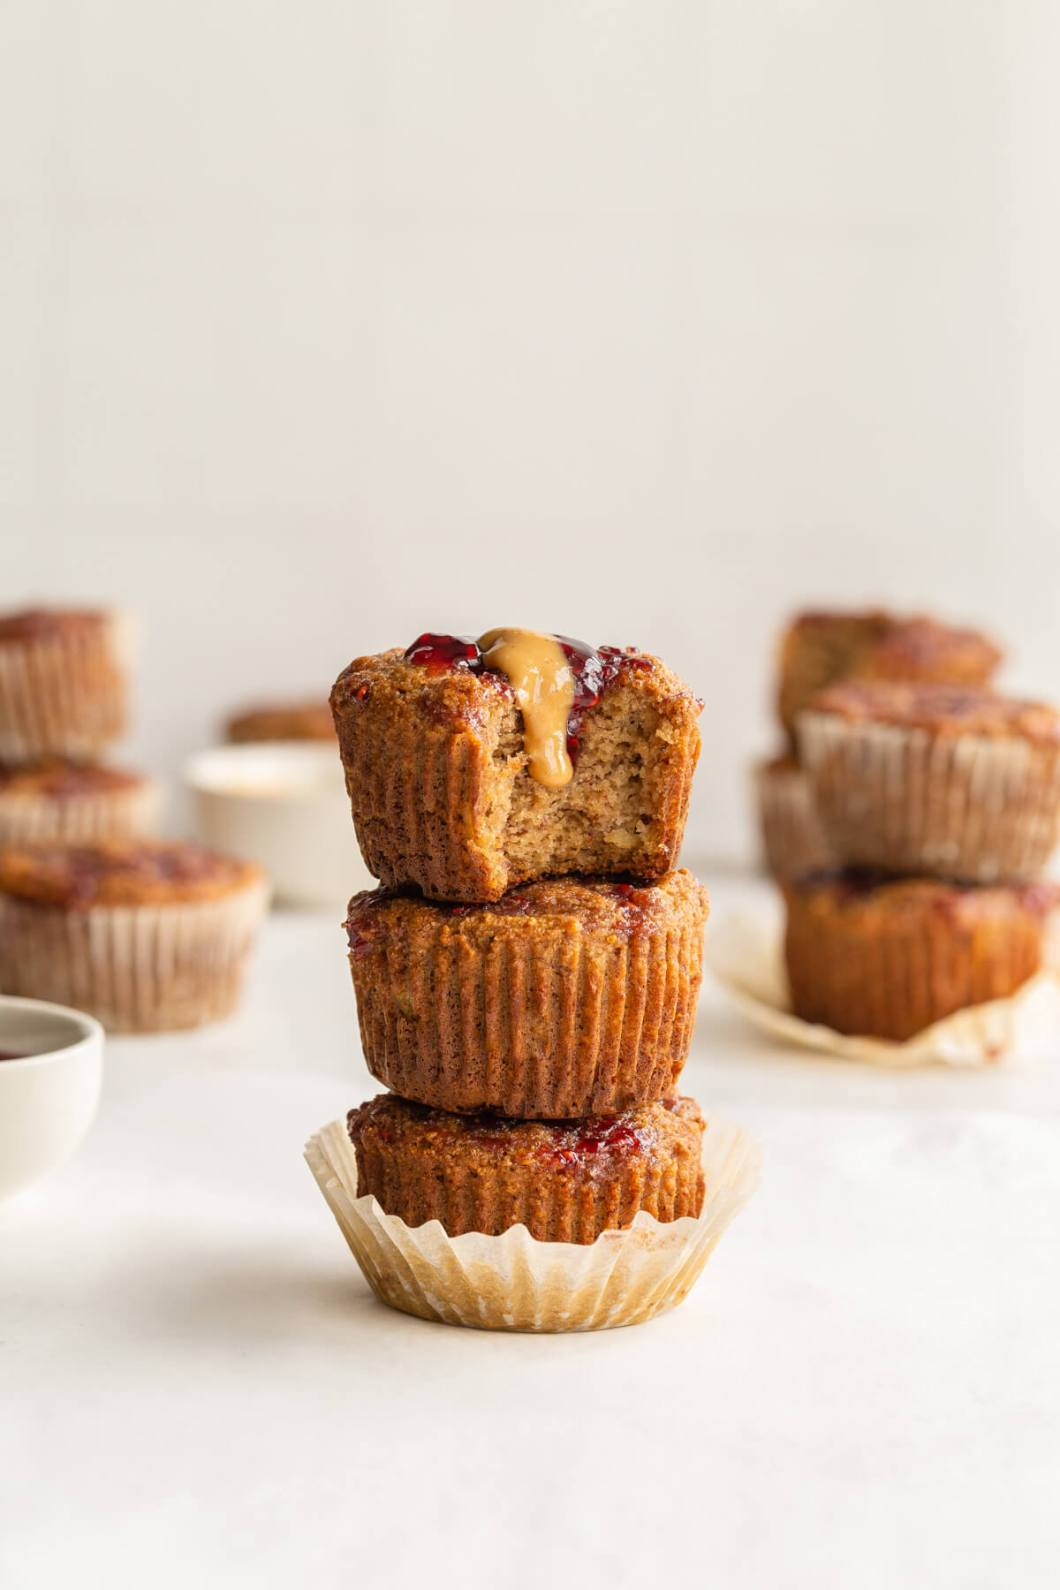 Stack of three banana muffins with a peanut butter and jelly drip